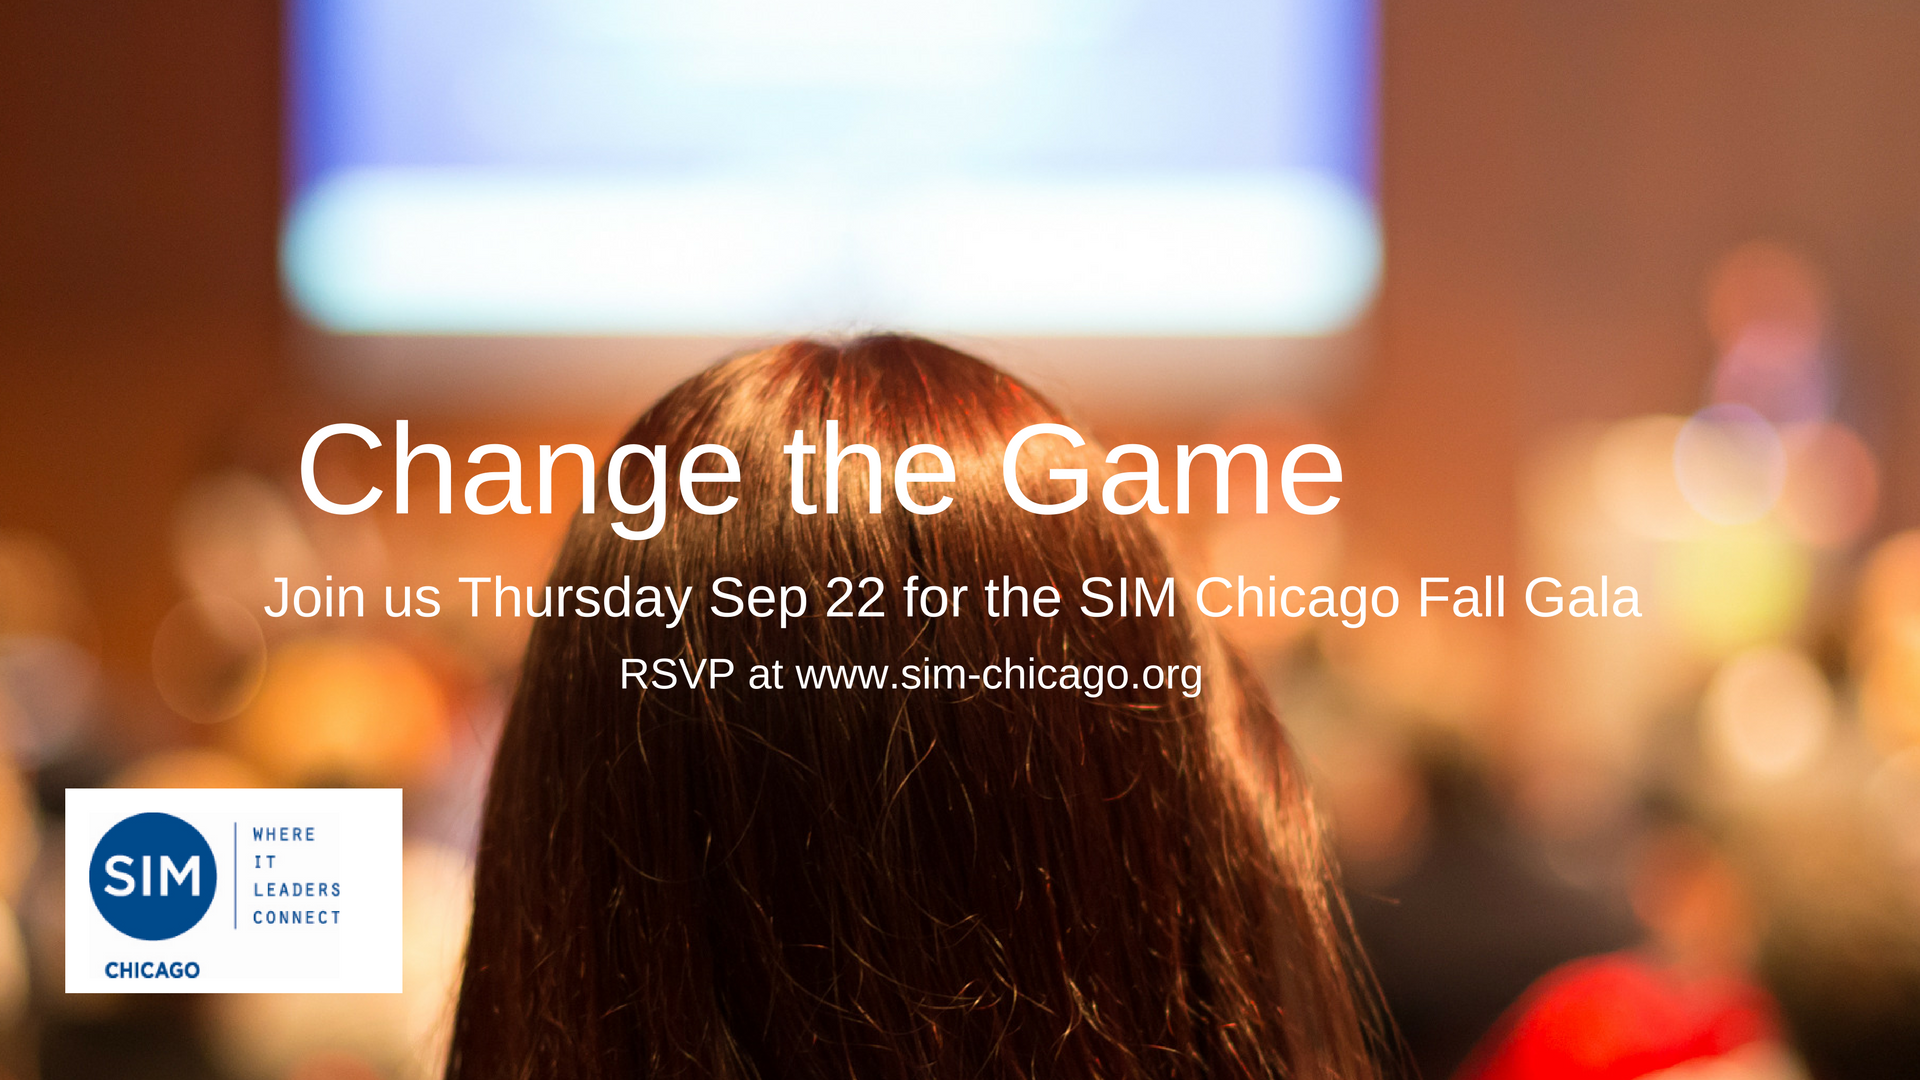 Change the Game - Join Technology Leaders at the SIM Chicago Fall Gala Thursday 9 / 22